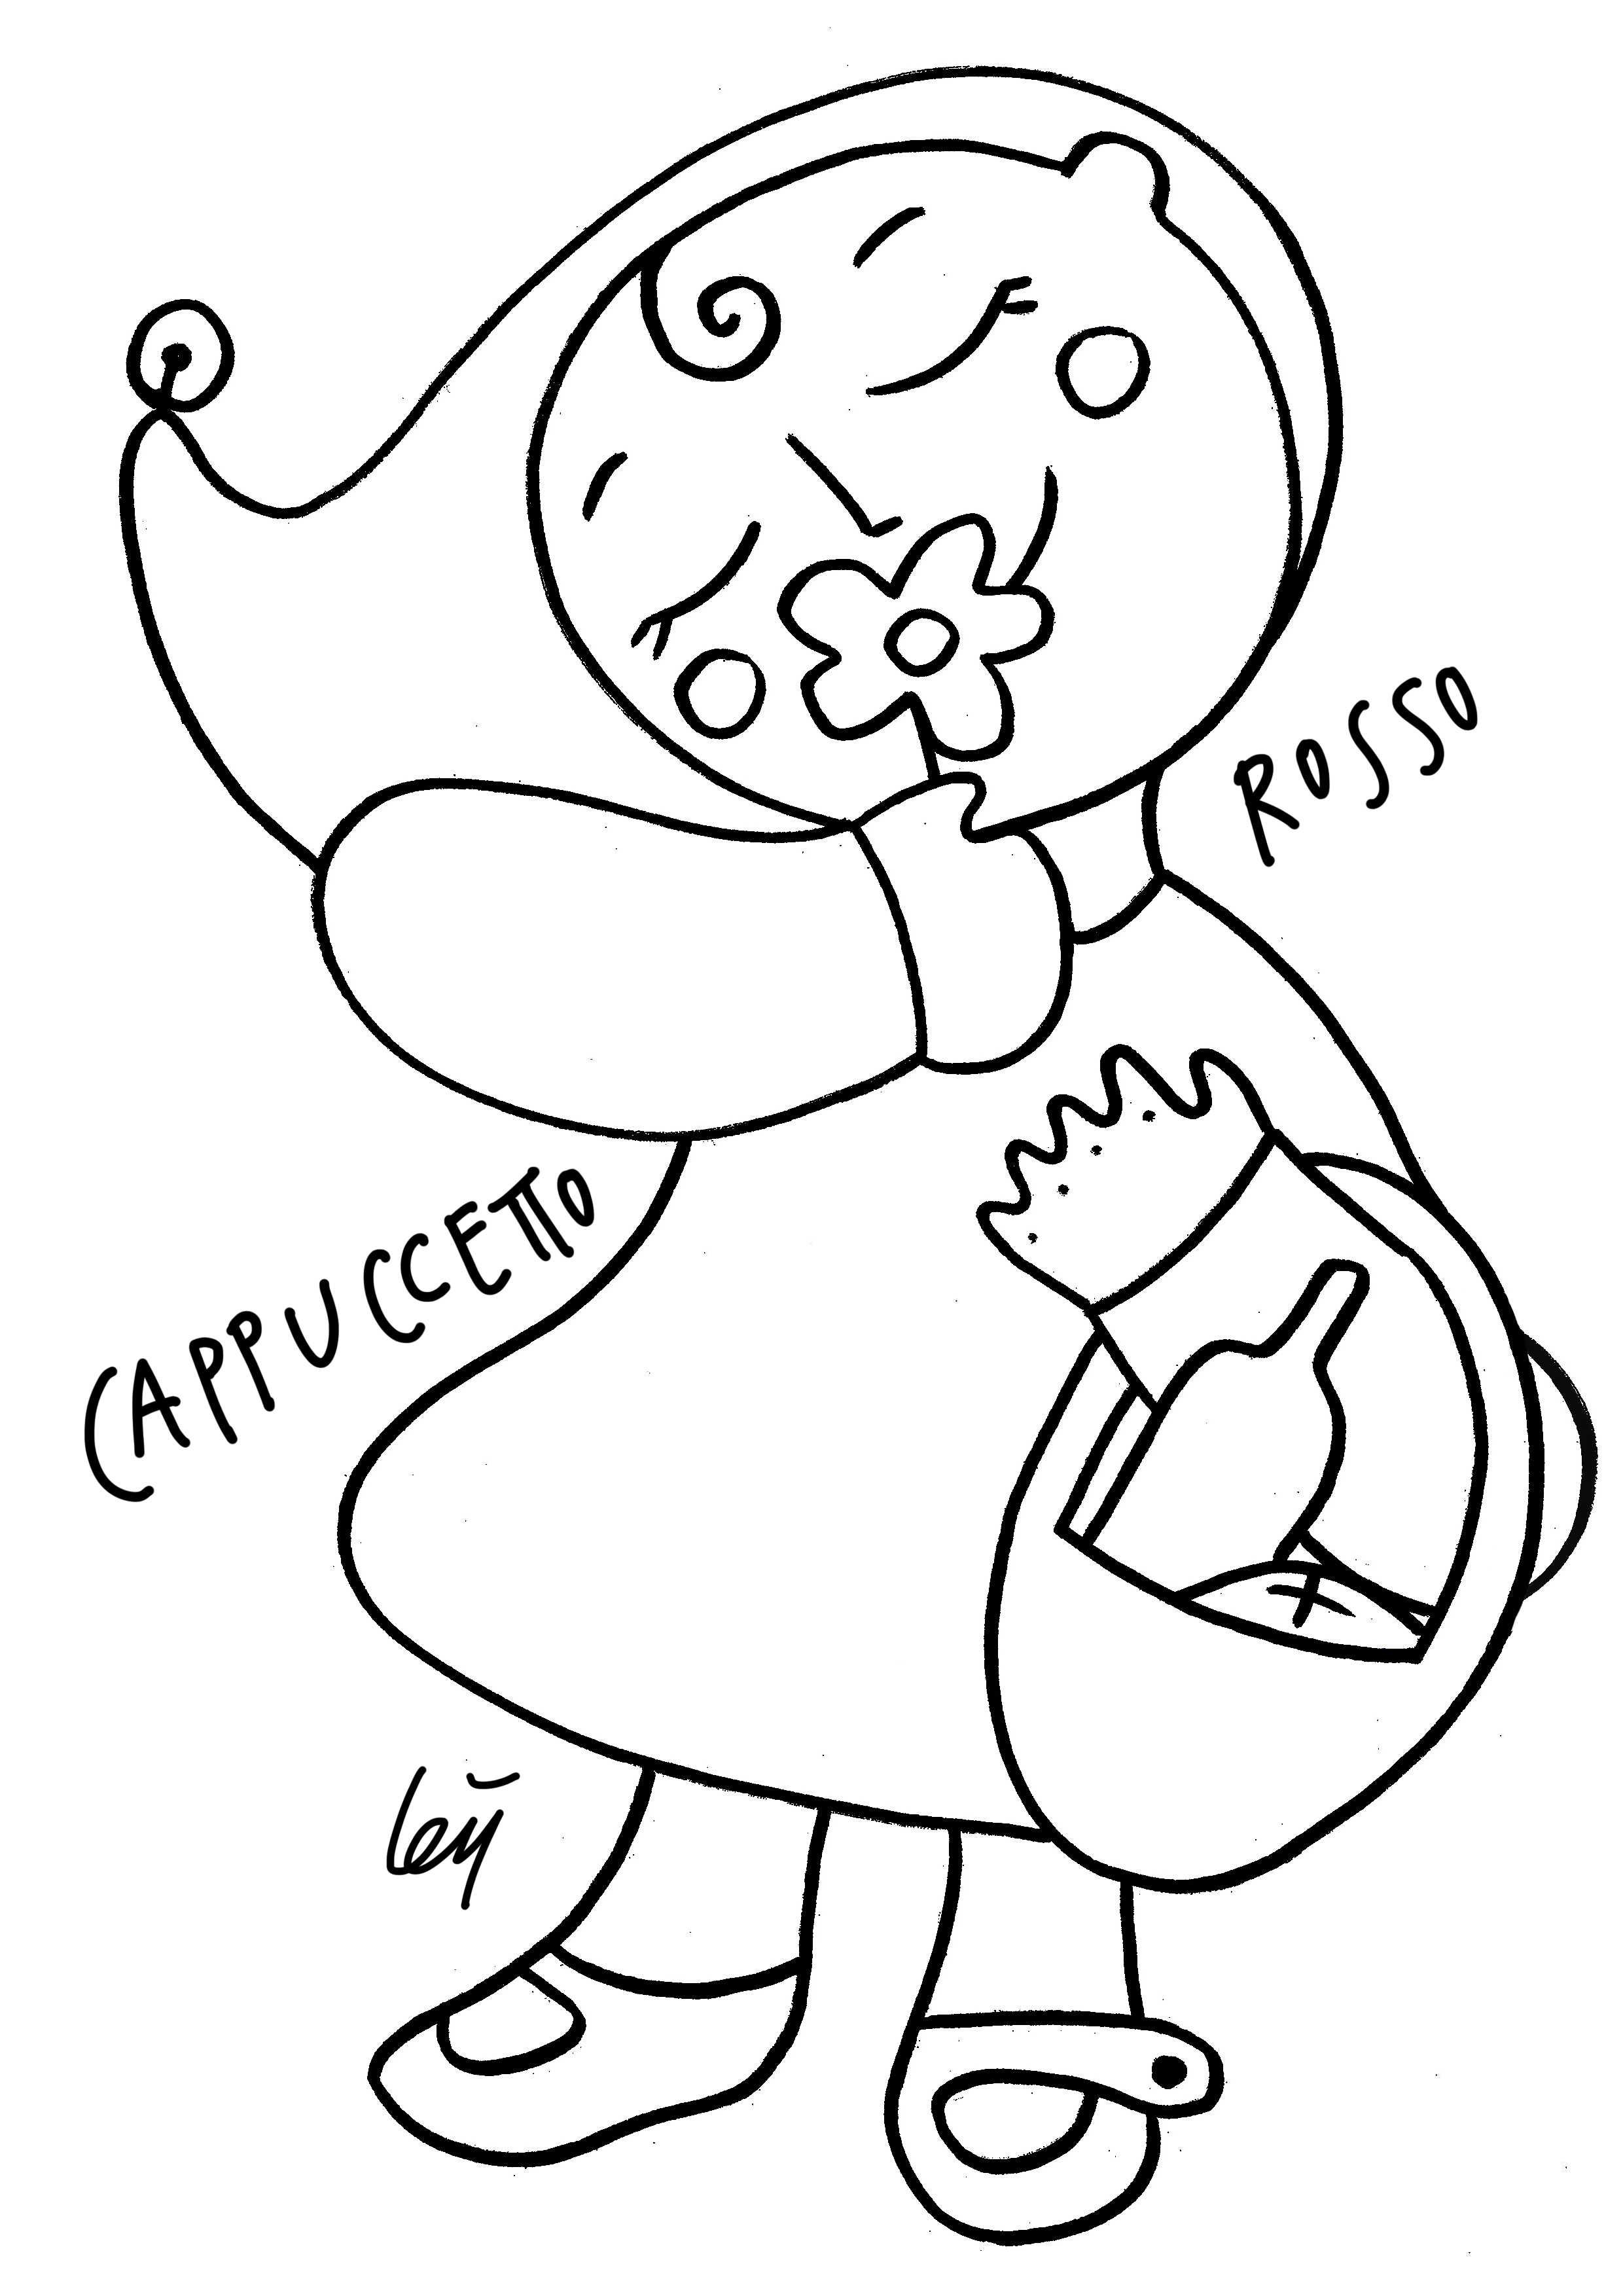 farfallina and marcel coloring pages - photo#10